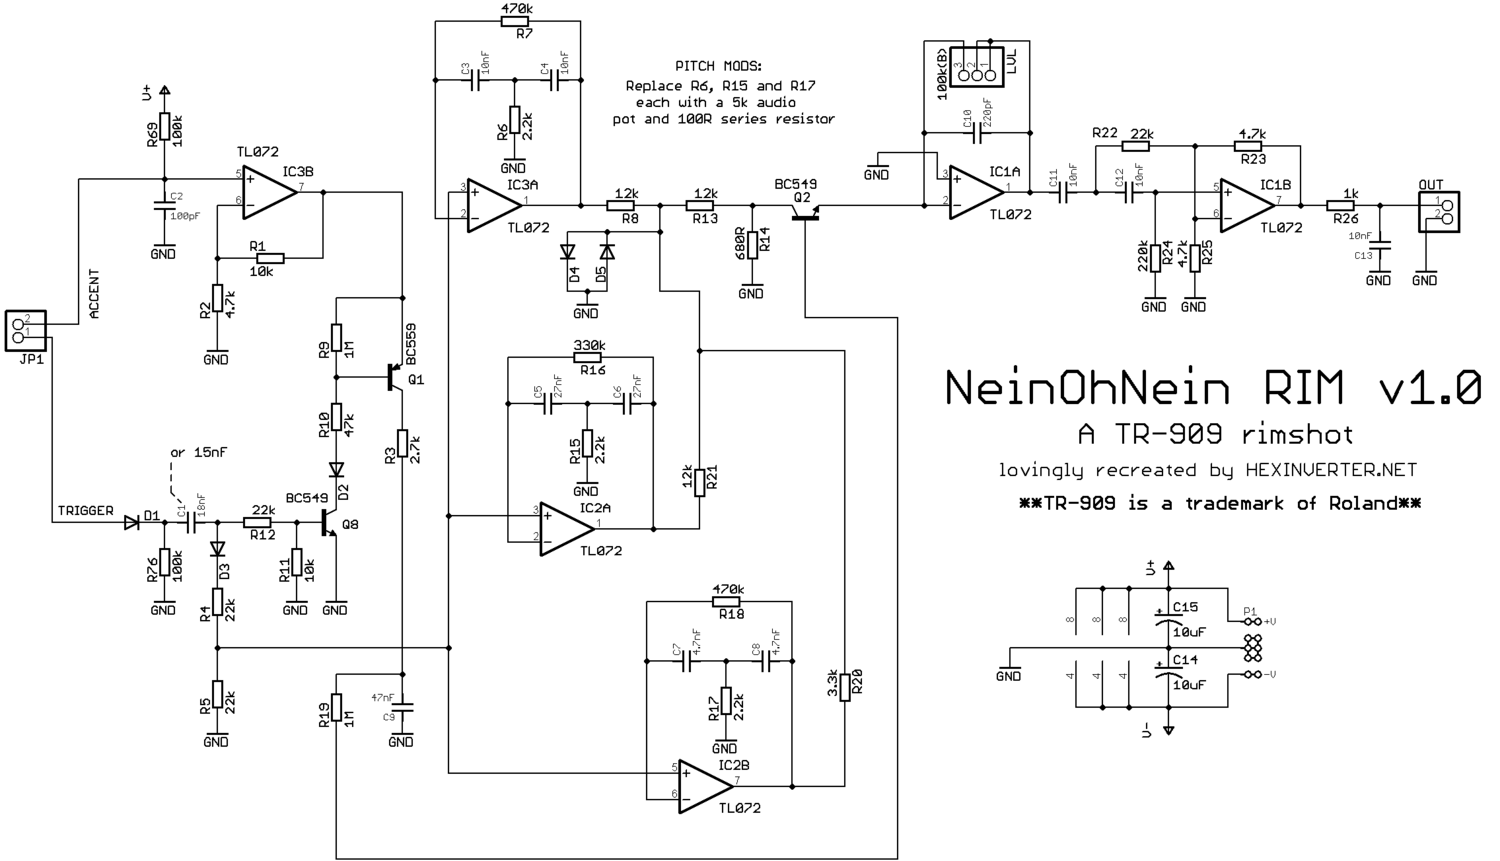 Neinohnein Rim V10 Hexinverter Lectronique Hex Inverter Circuit Panels For This Project Available Purchase At